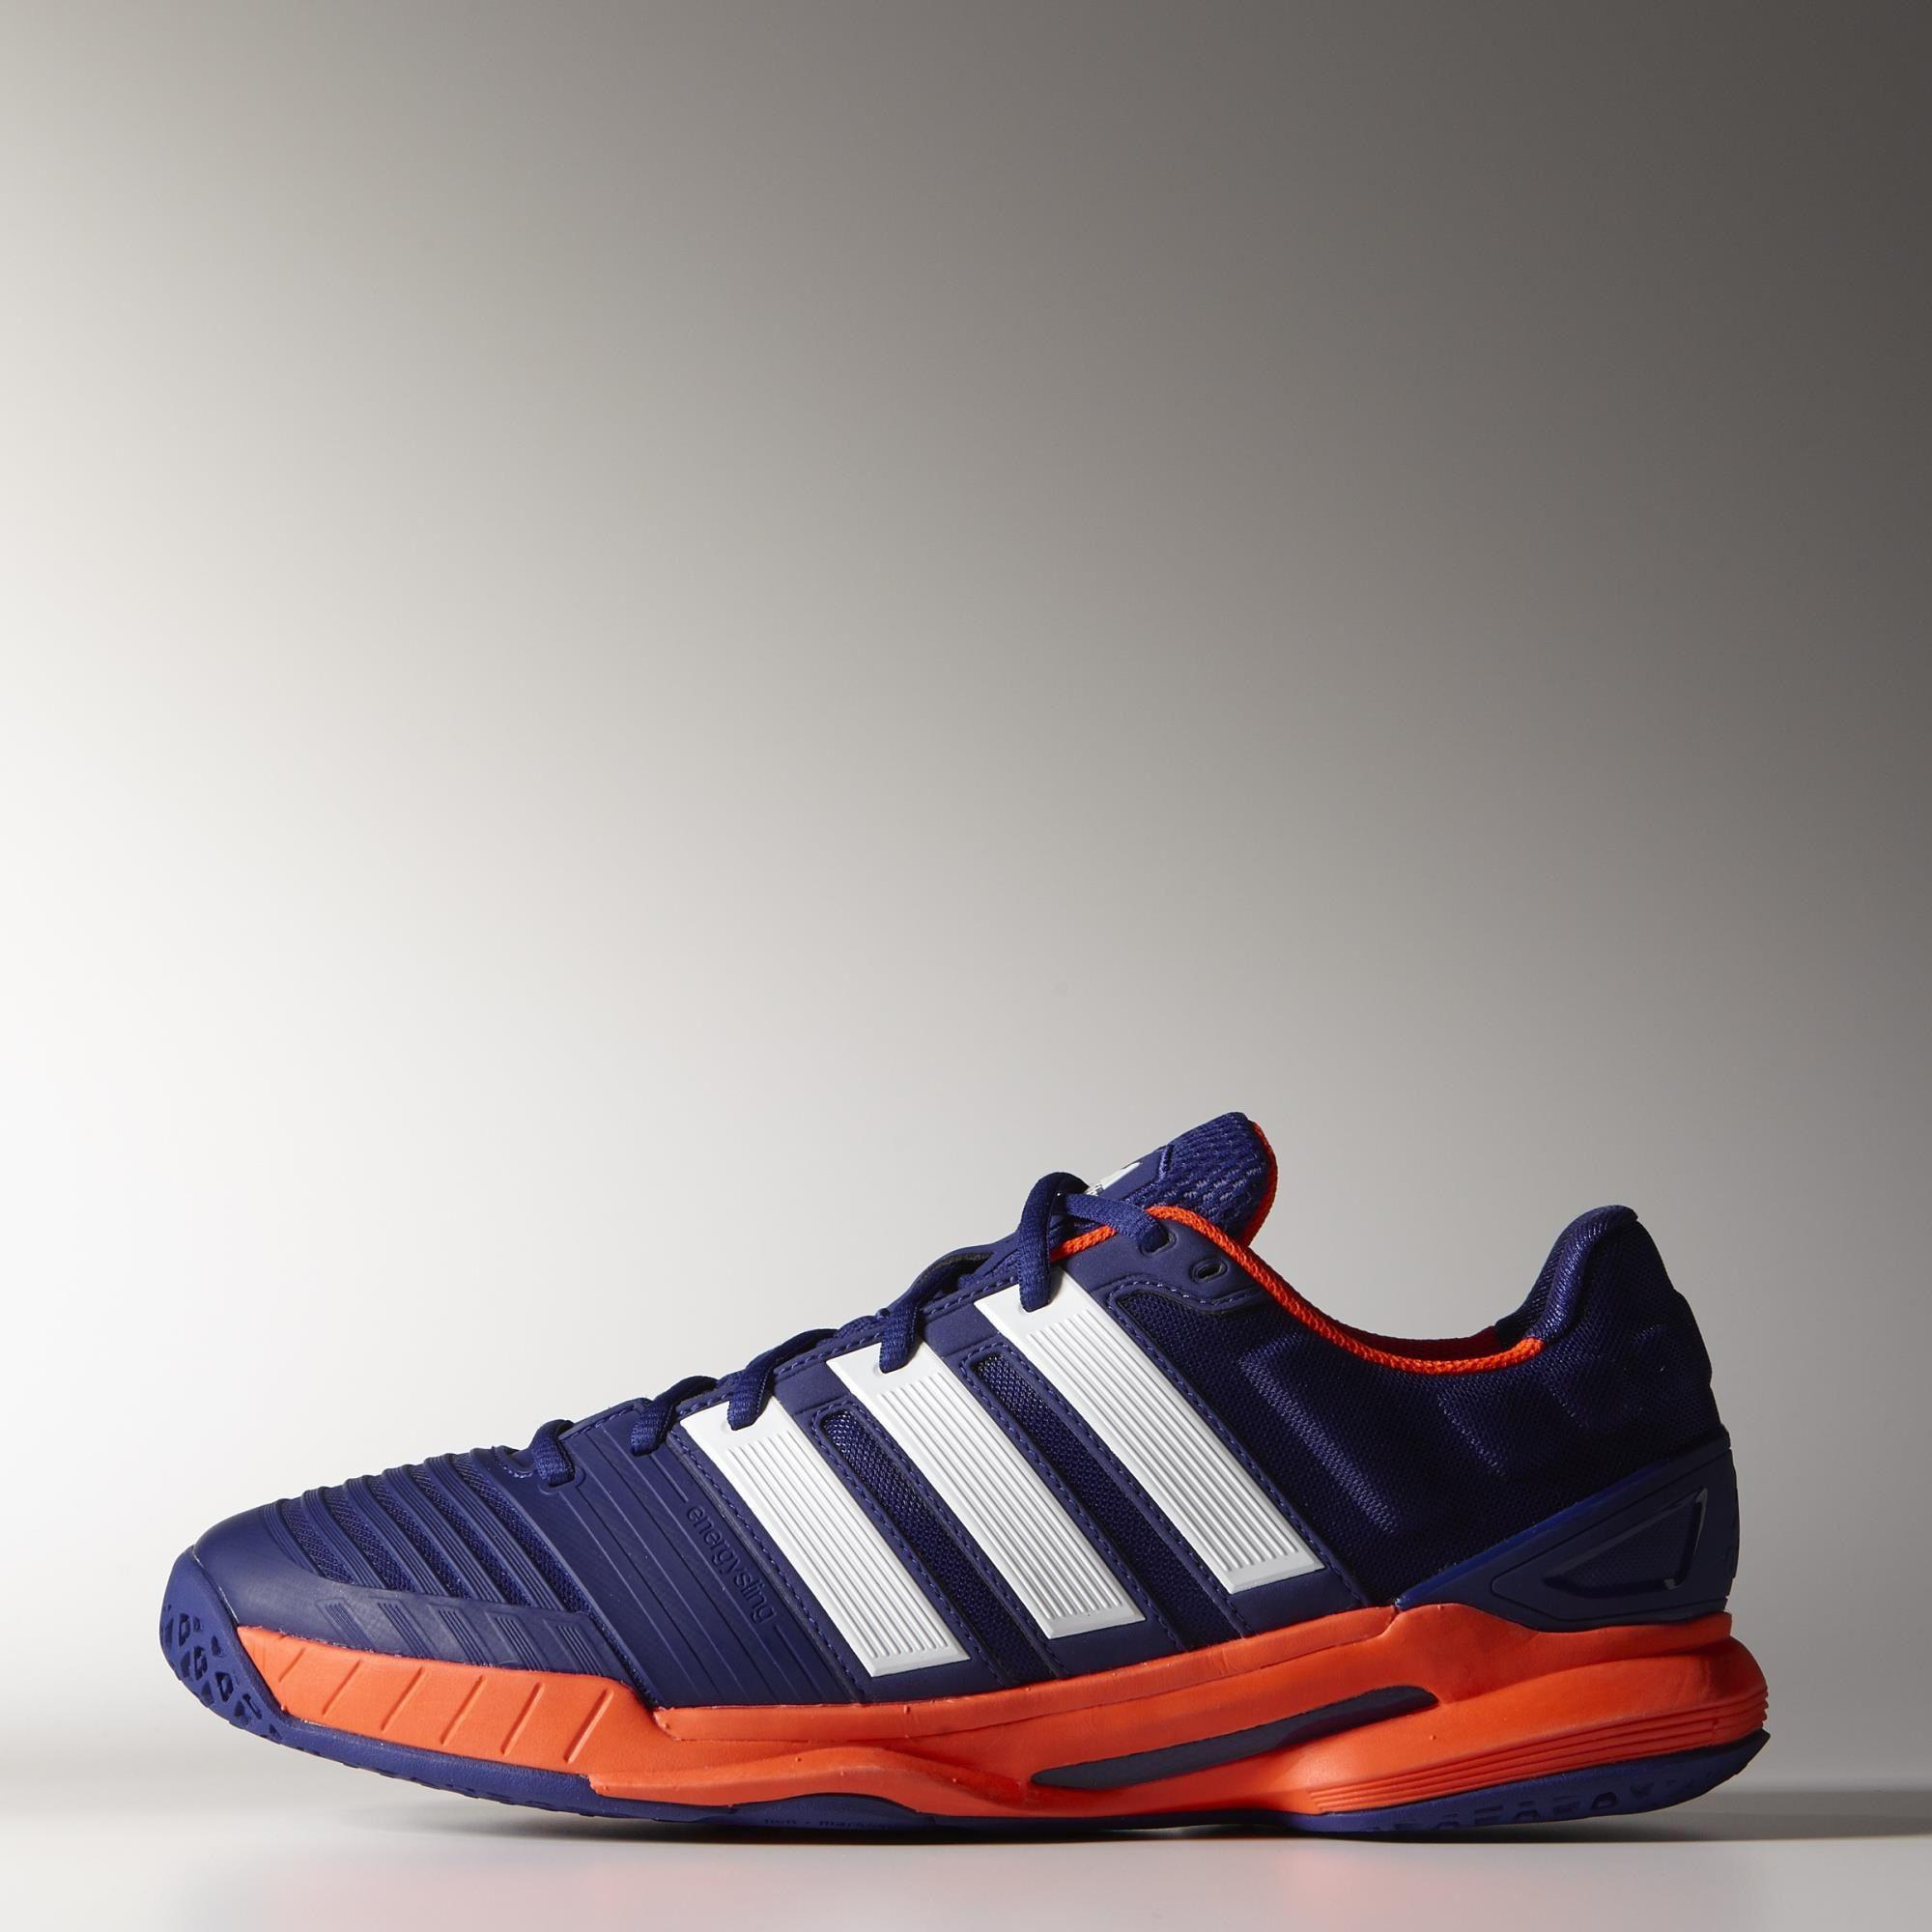 Adidas Mens adiPower Stabil 11 Indoor Shoes - Purple Red - Tennisnuts.com 7a8658d16a597